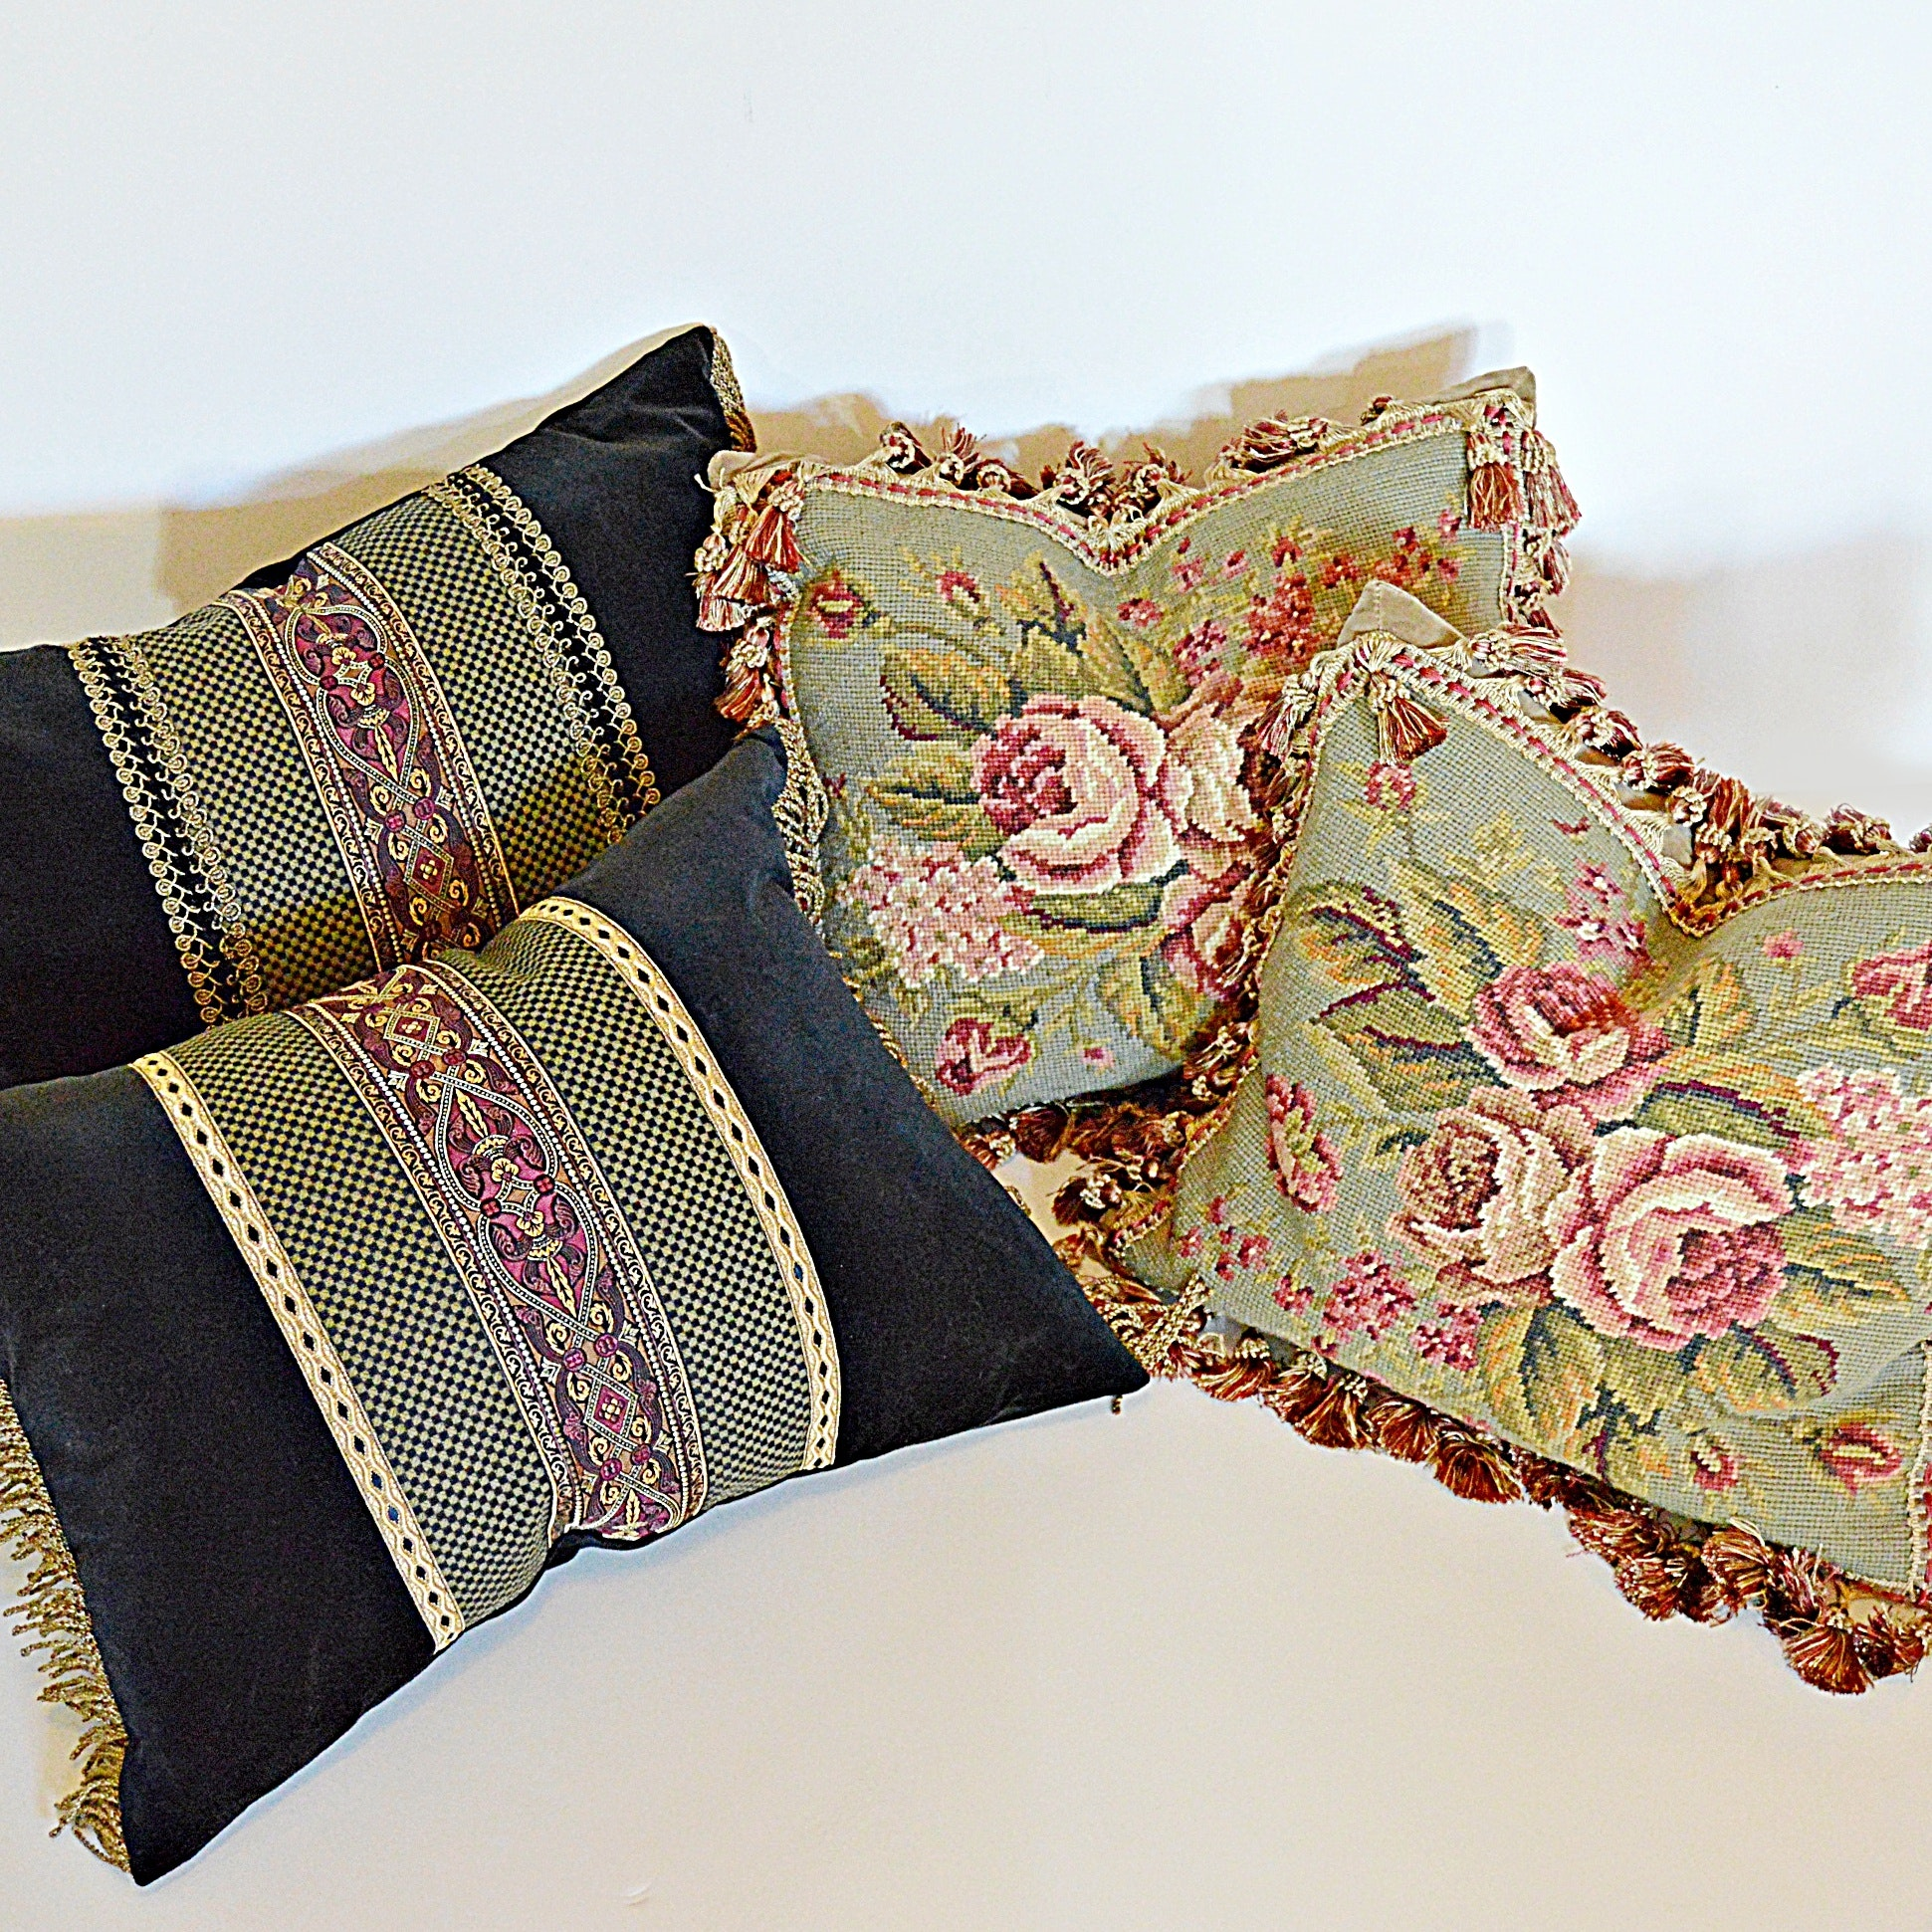 Four Custom Down-Filled Pillows with Two Needlepoint